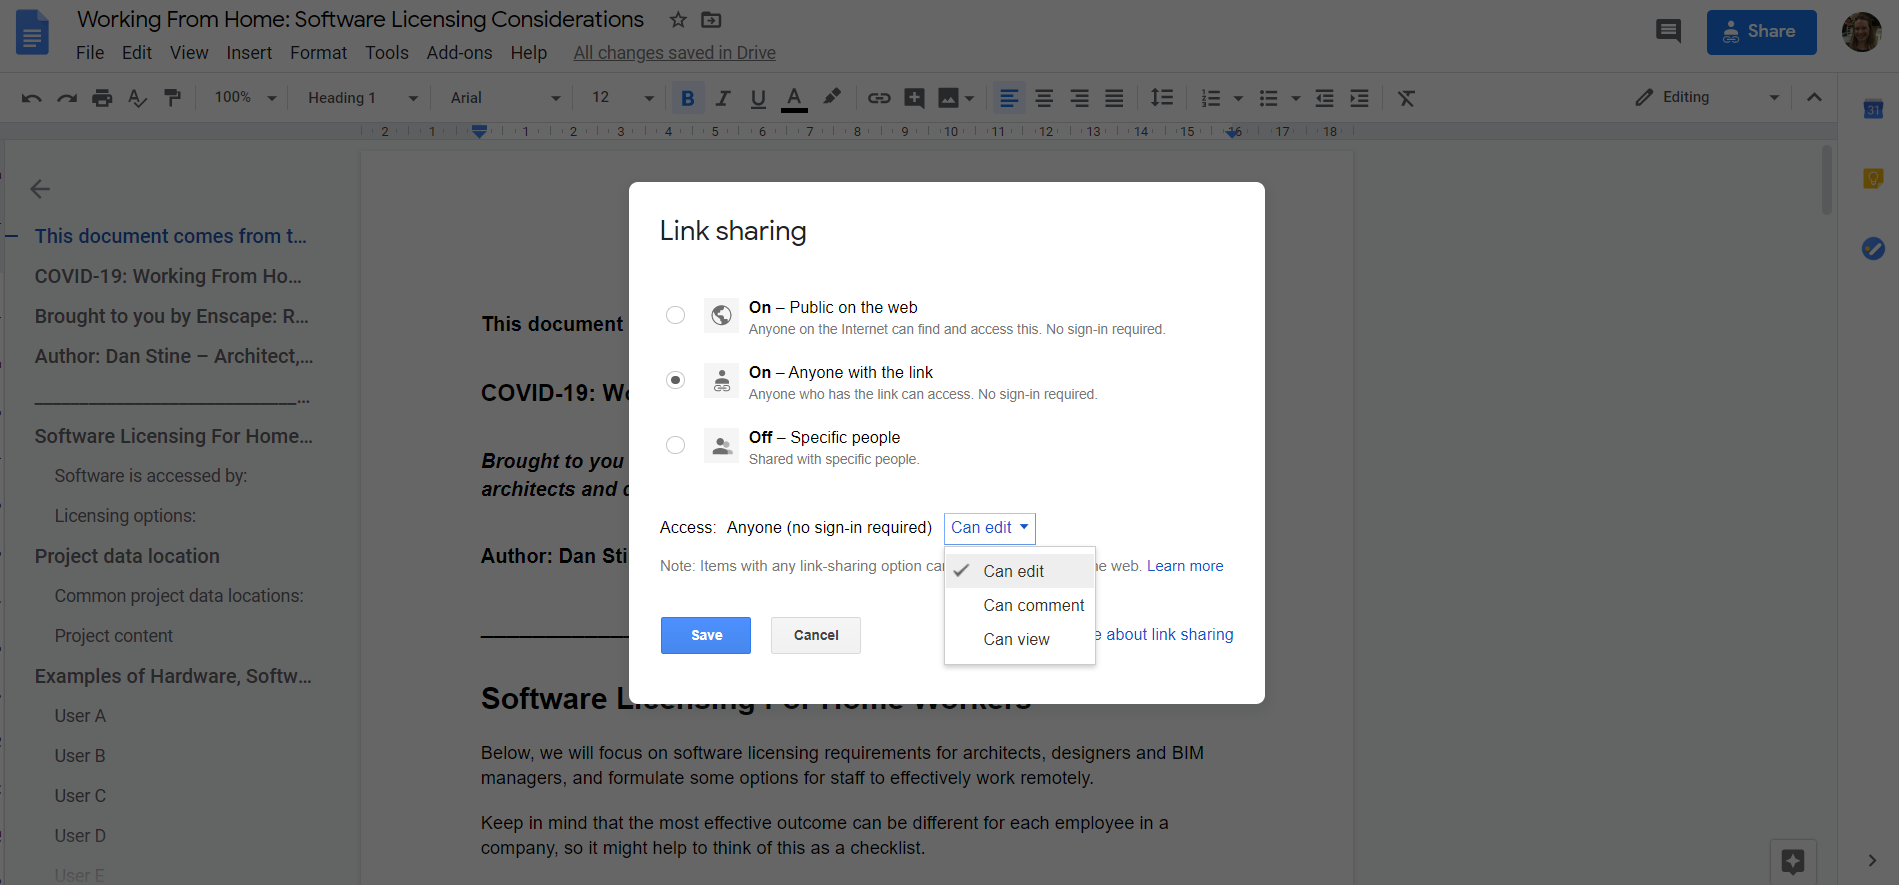 Google Docs: How to Enable Editing Rights